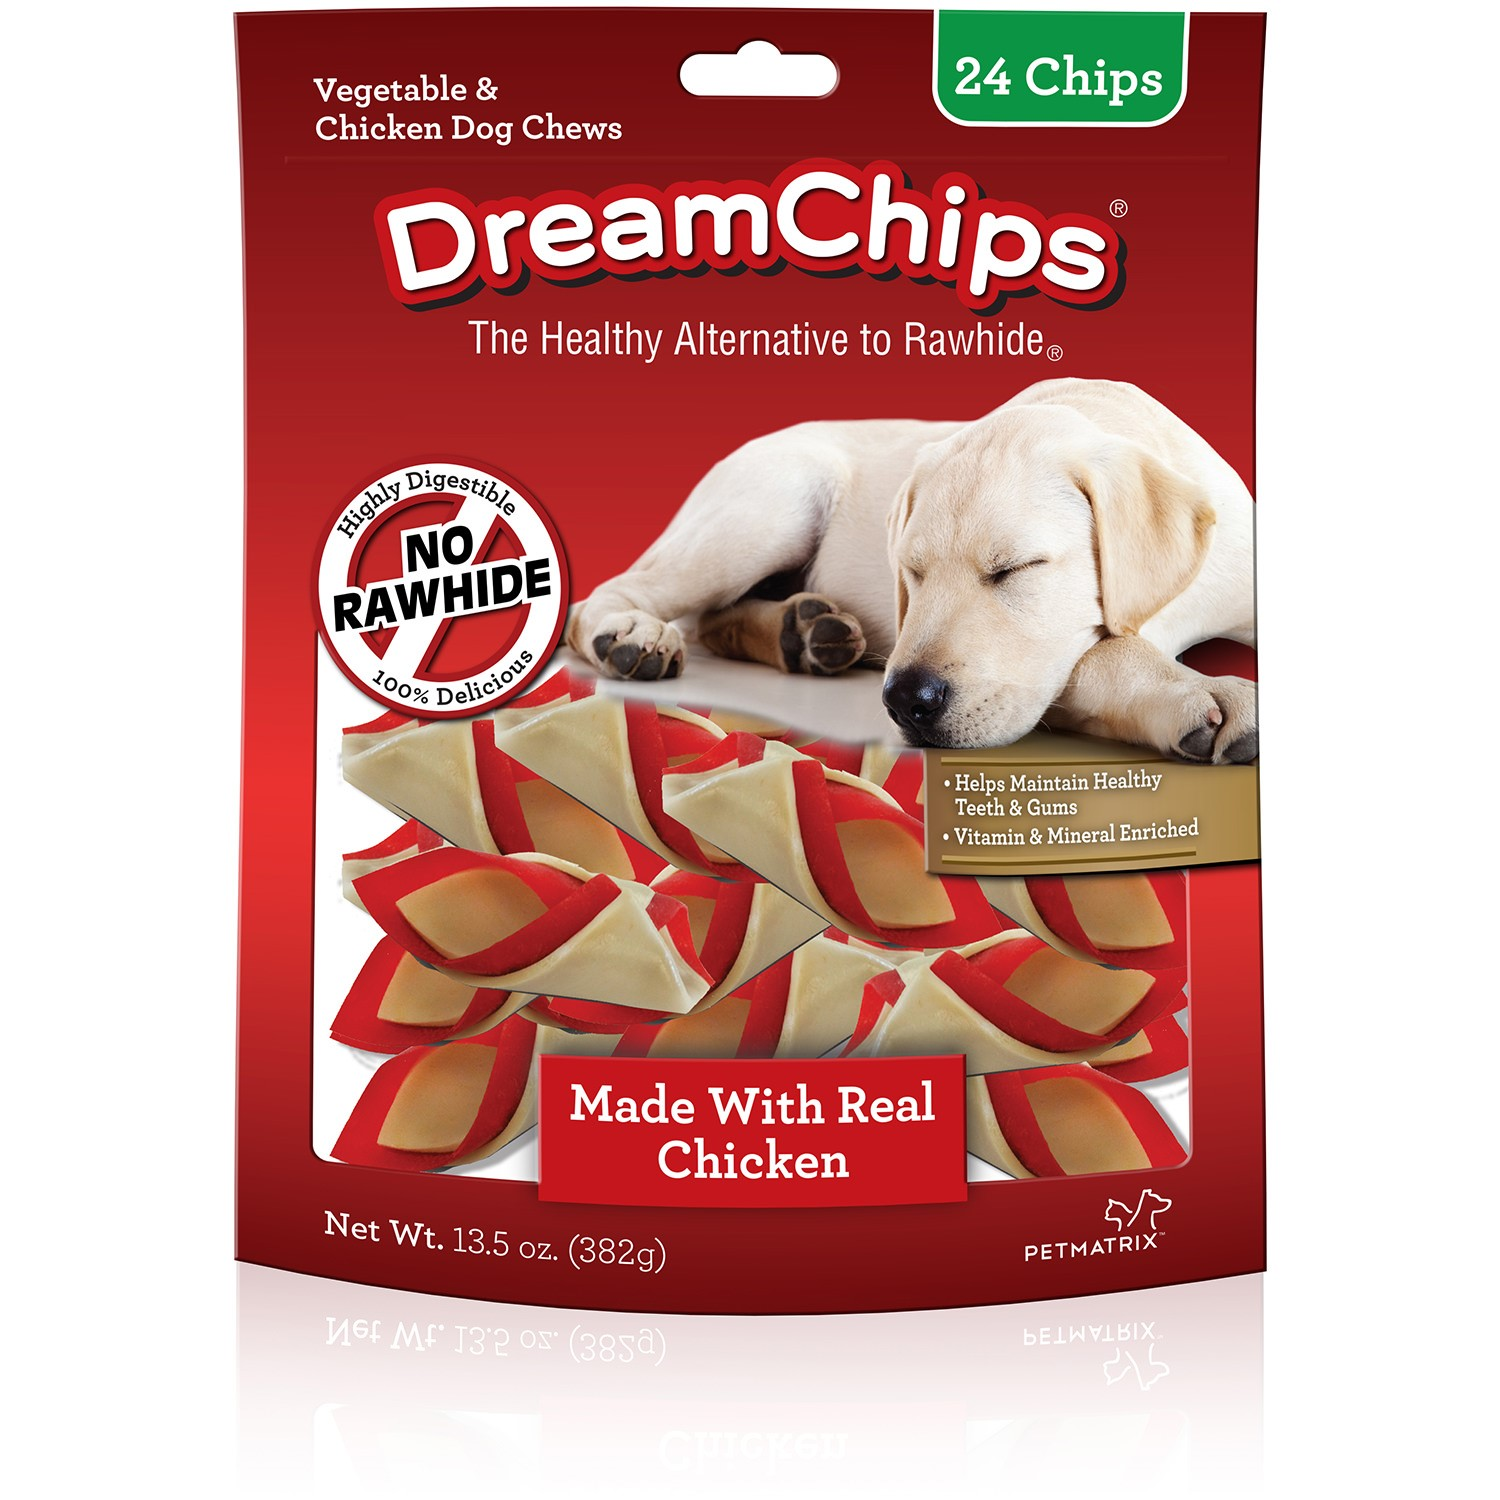 DreamBone DreamChips Chews for Dogs, Rawhide Free, 24ct